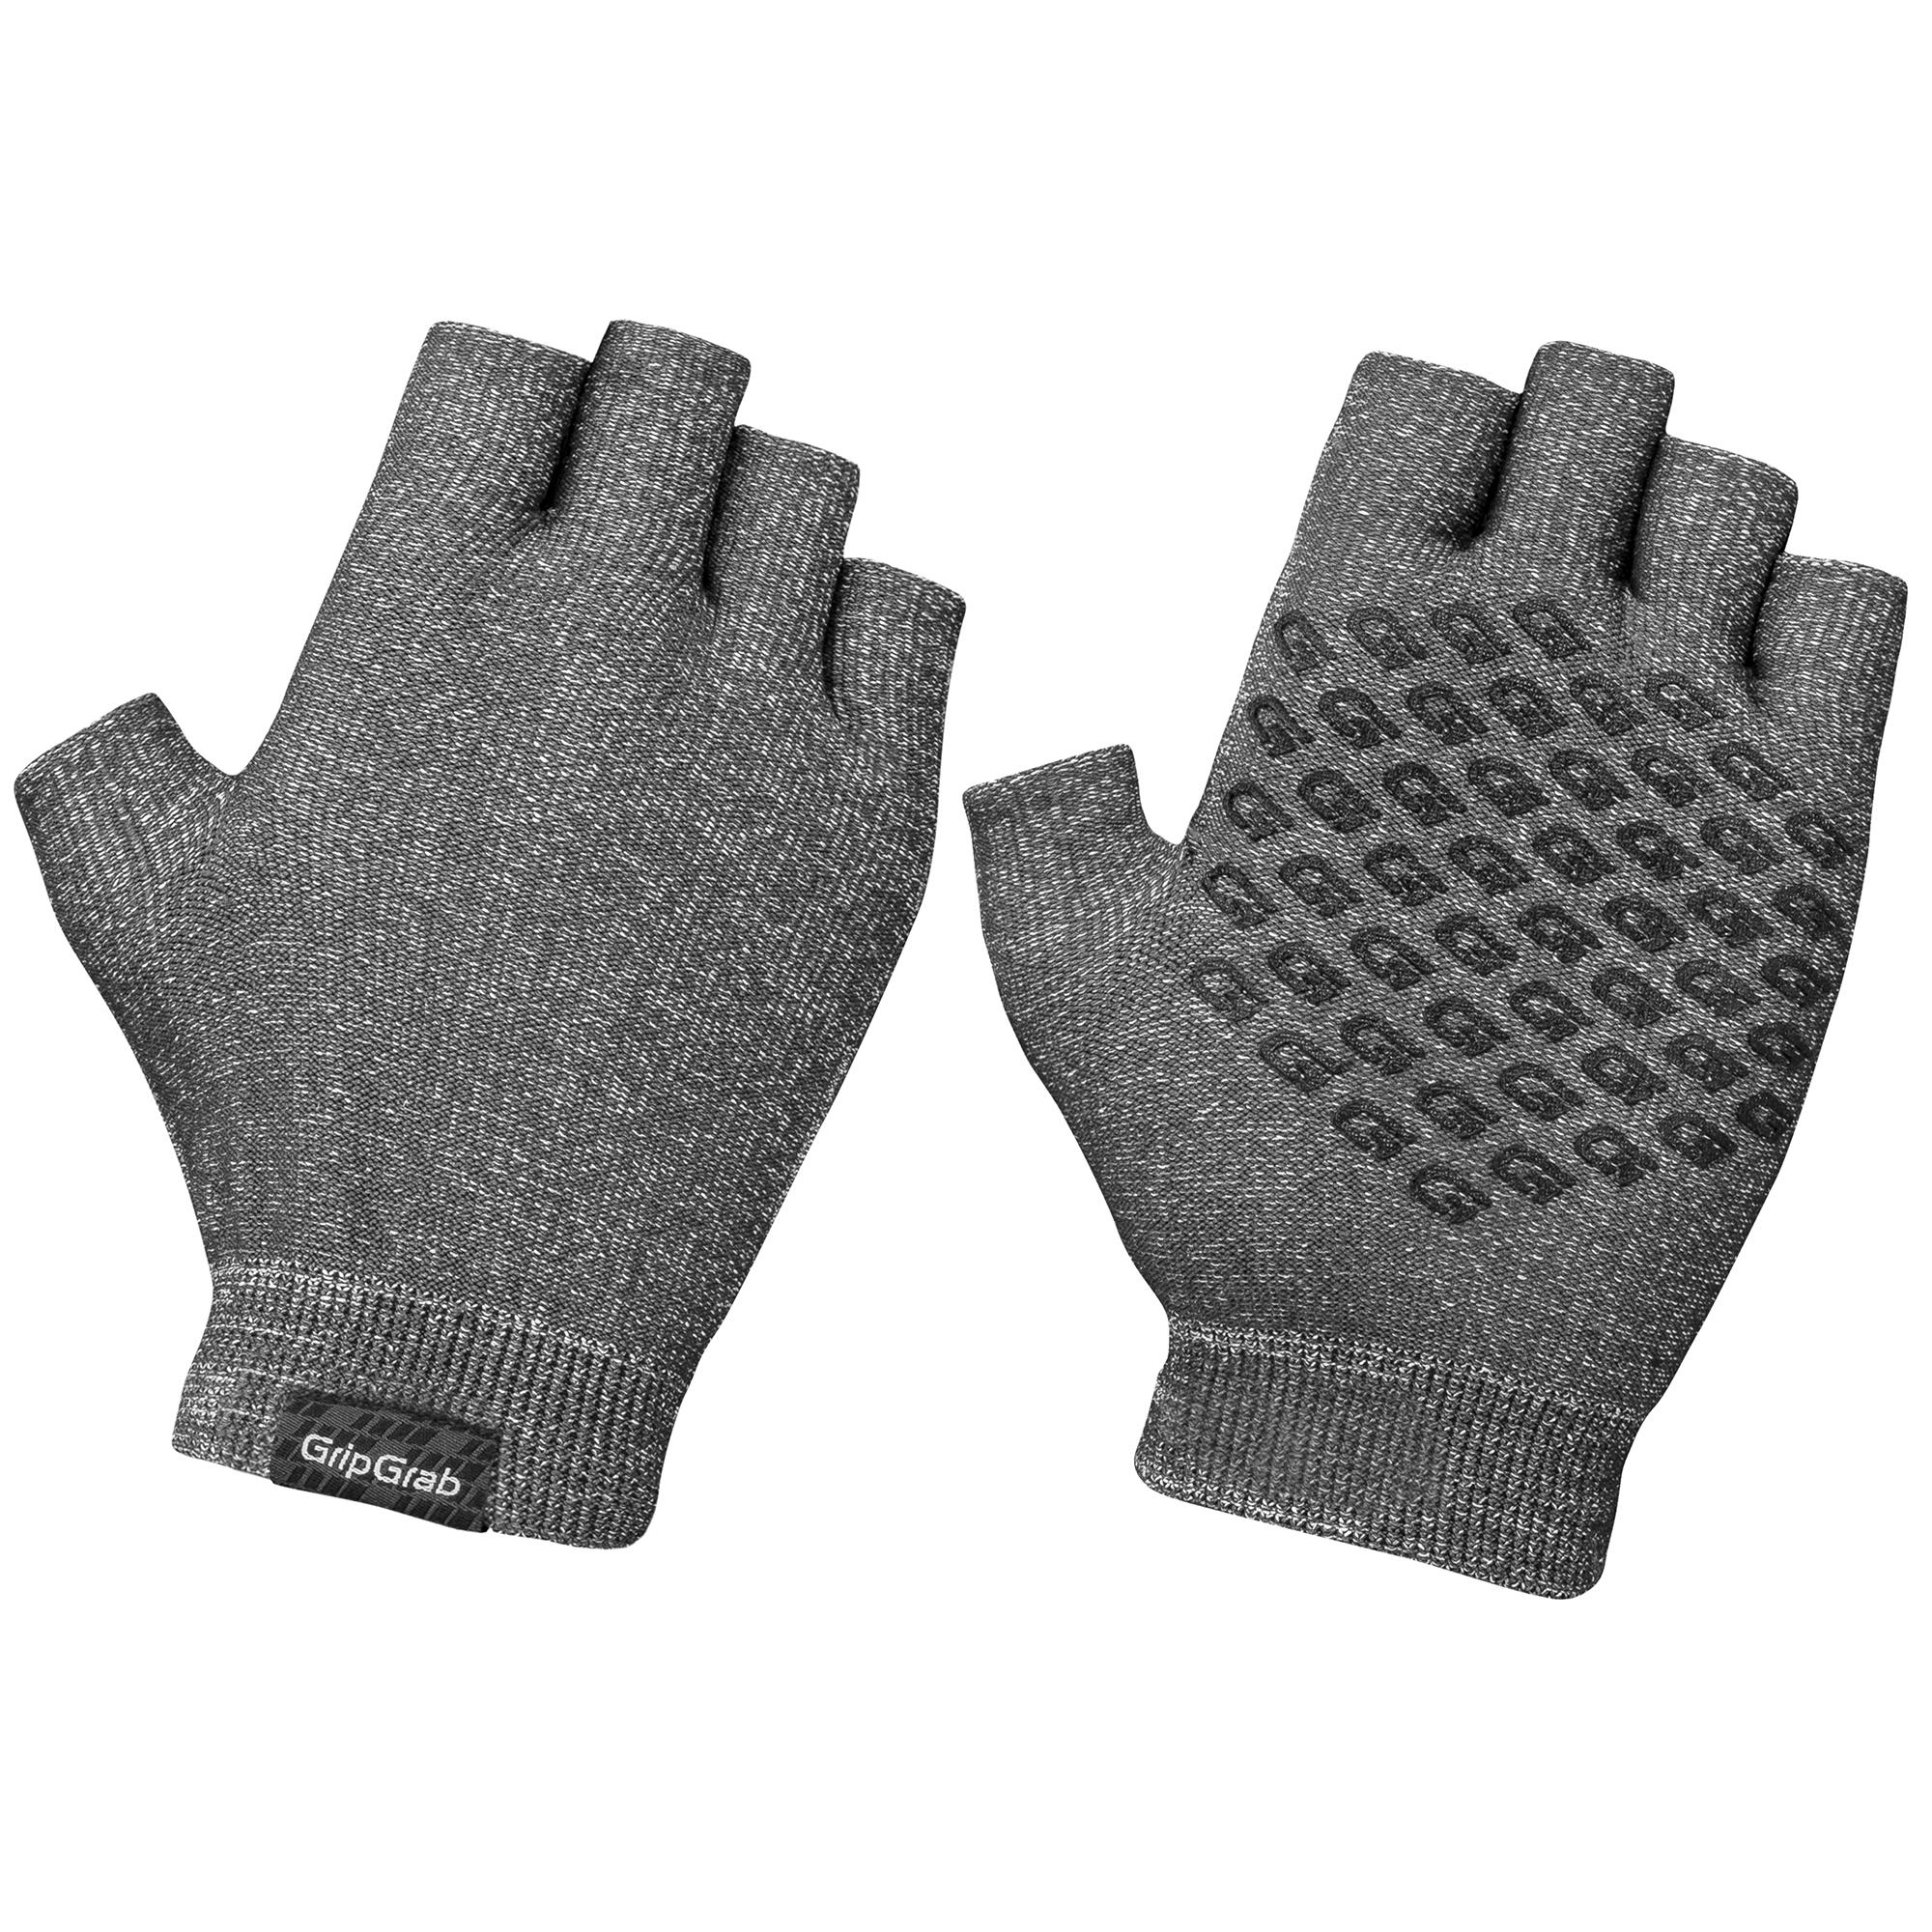 Afbeelding GripGrab Fietshandschoenen Zomer Unisex Antraciet - Freedom Knitted Short Finger Cycling Glove Anthracite